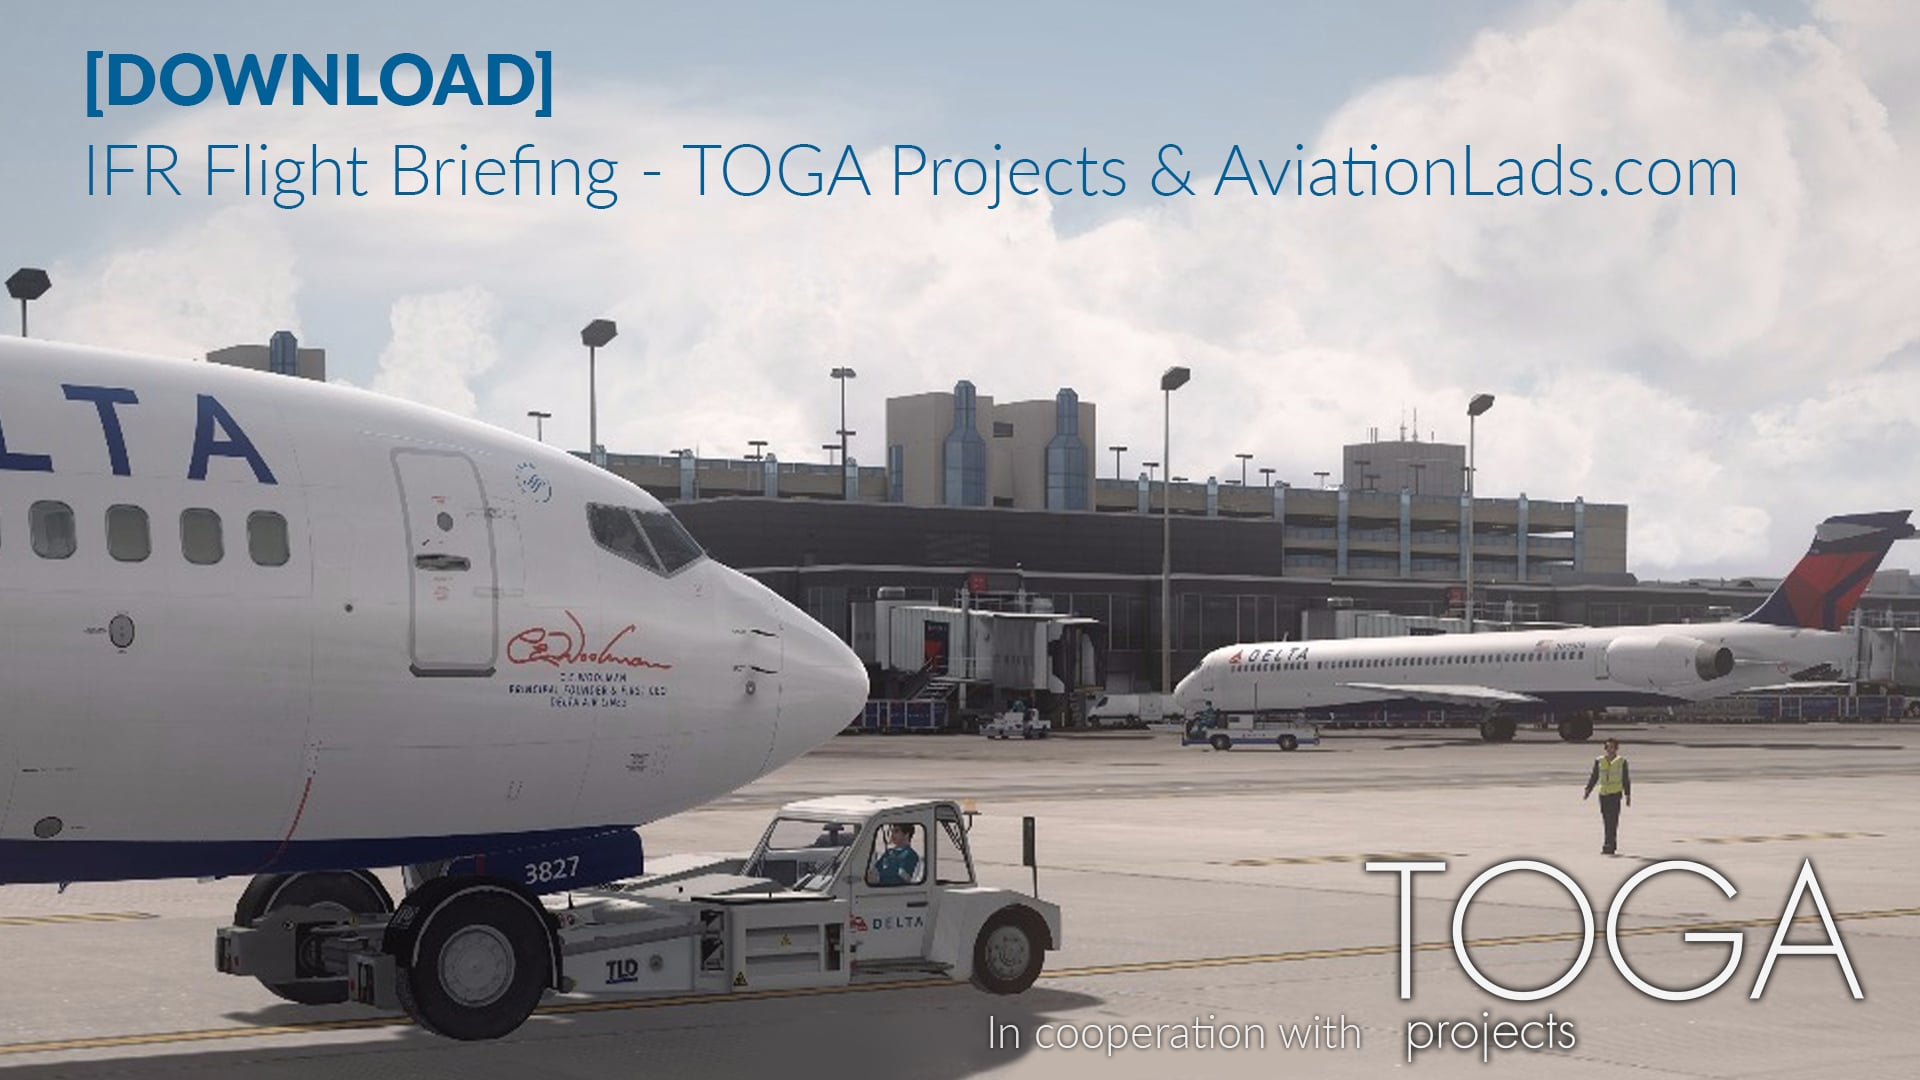 [DOWNLOAD] IFR Briefing Document | TOGA Projects